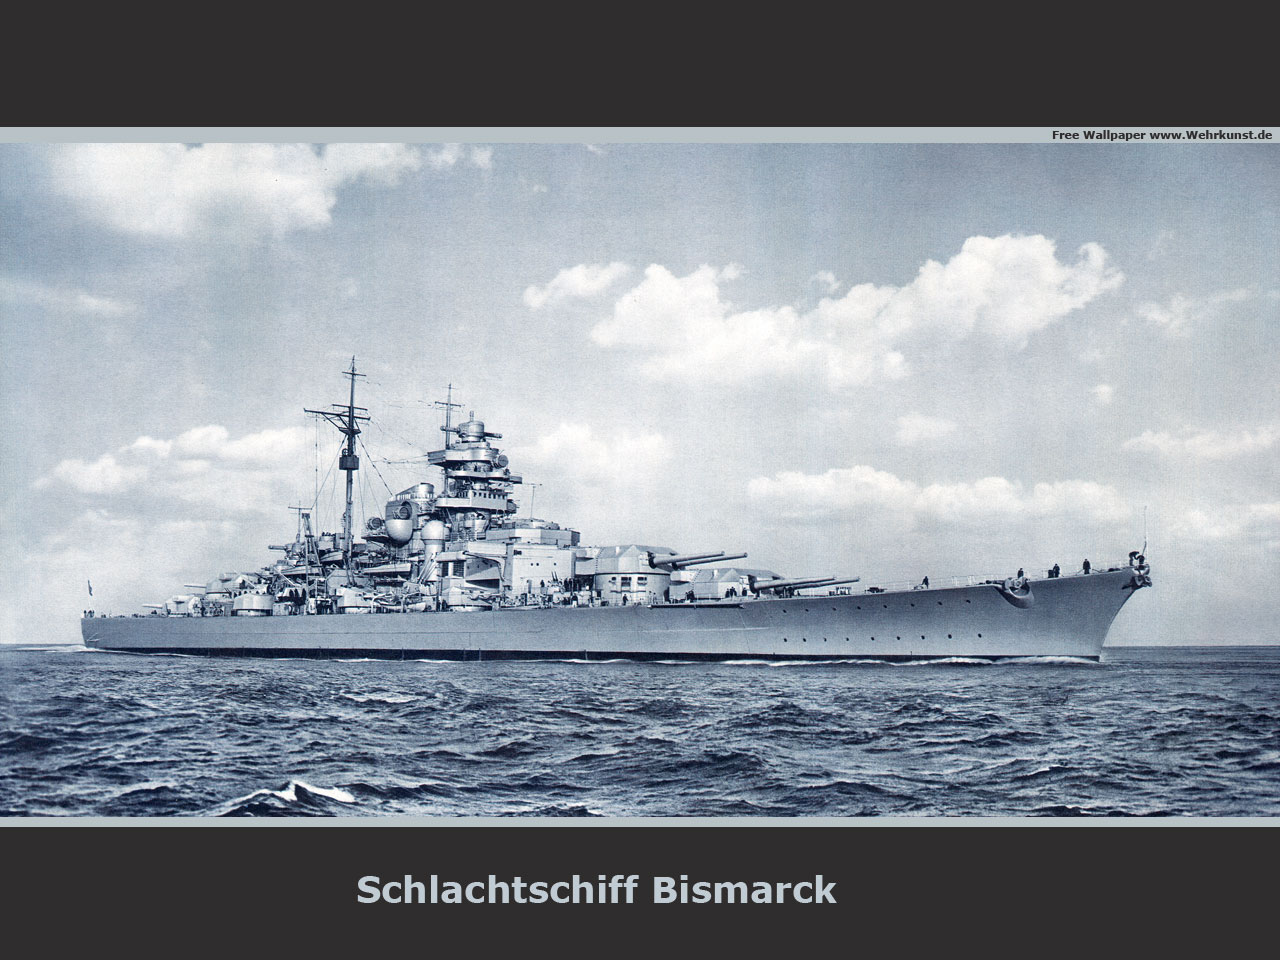 German Battleship Bismarck by achmedthedeadteroris 1280x960